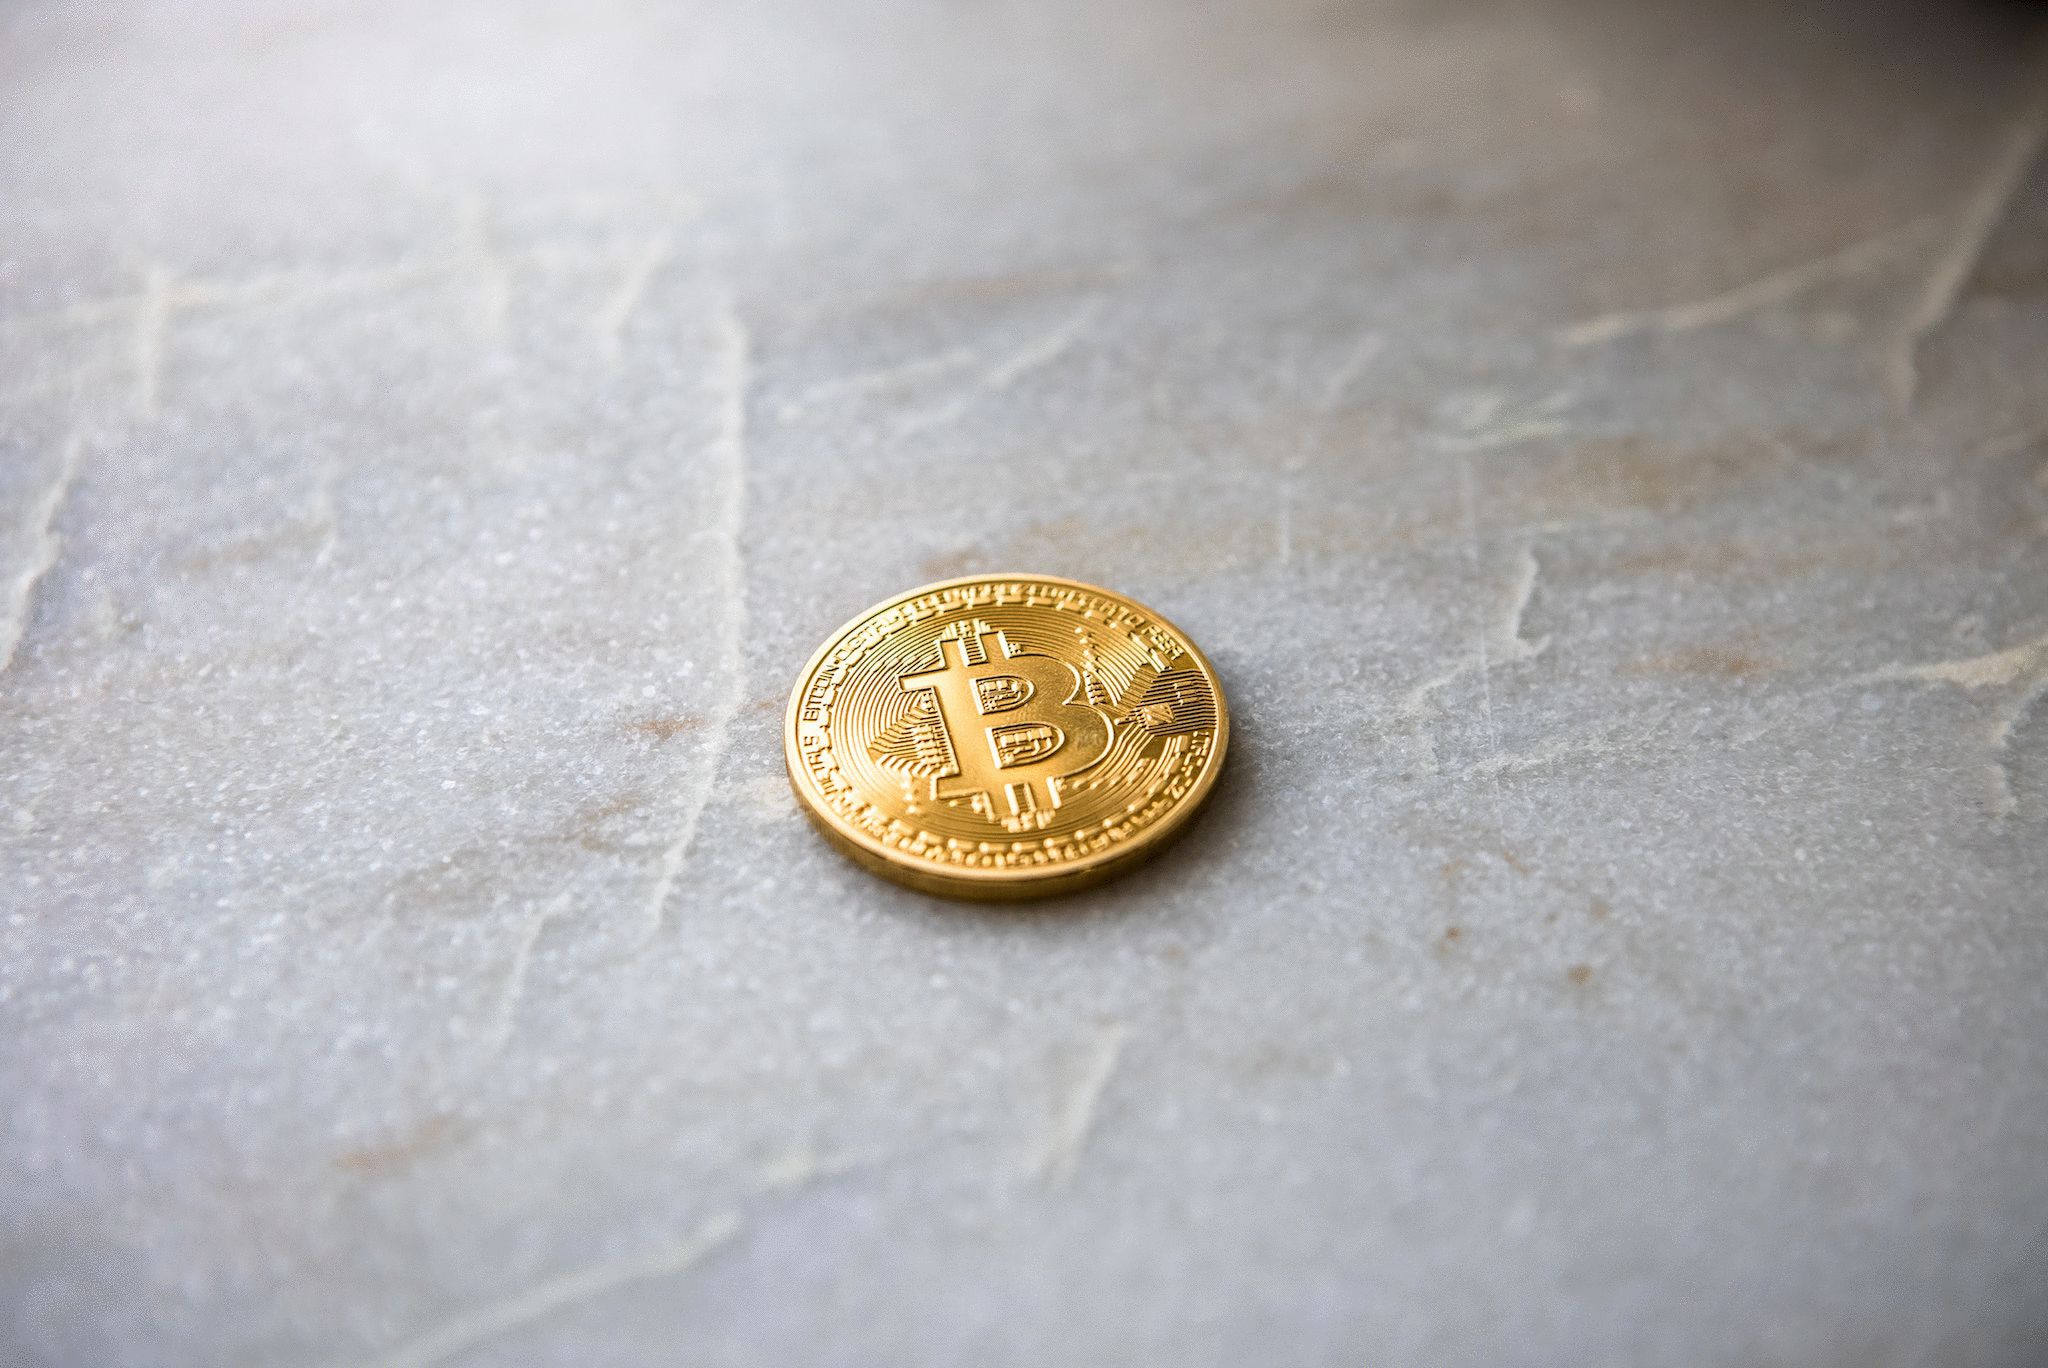 Getting Started With Bitcoin And CryptoCurrencies, A Beginner's Guide